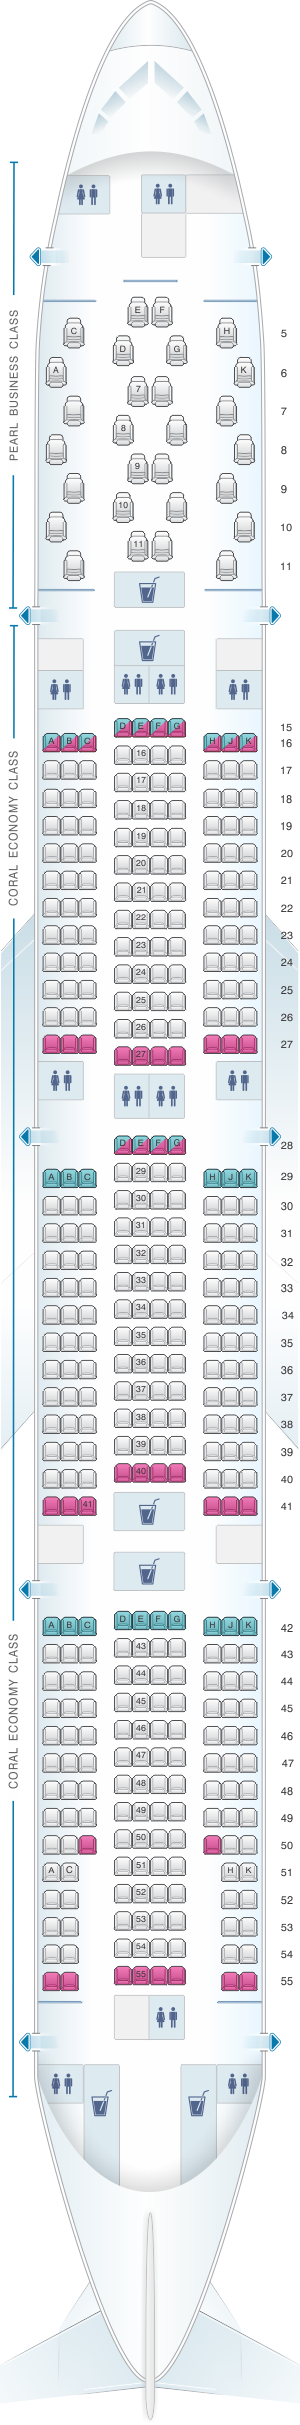 Seat map for Etihad Airways Boeing B777 300ER 412 pax